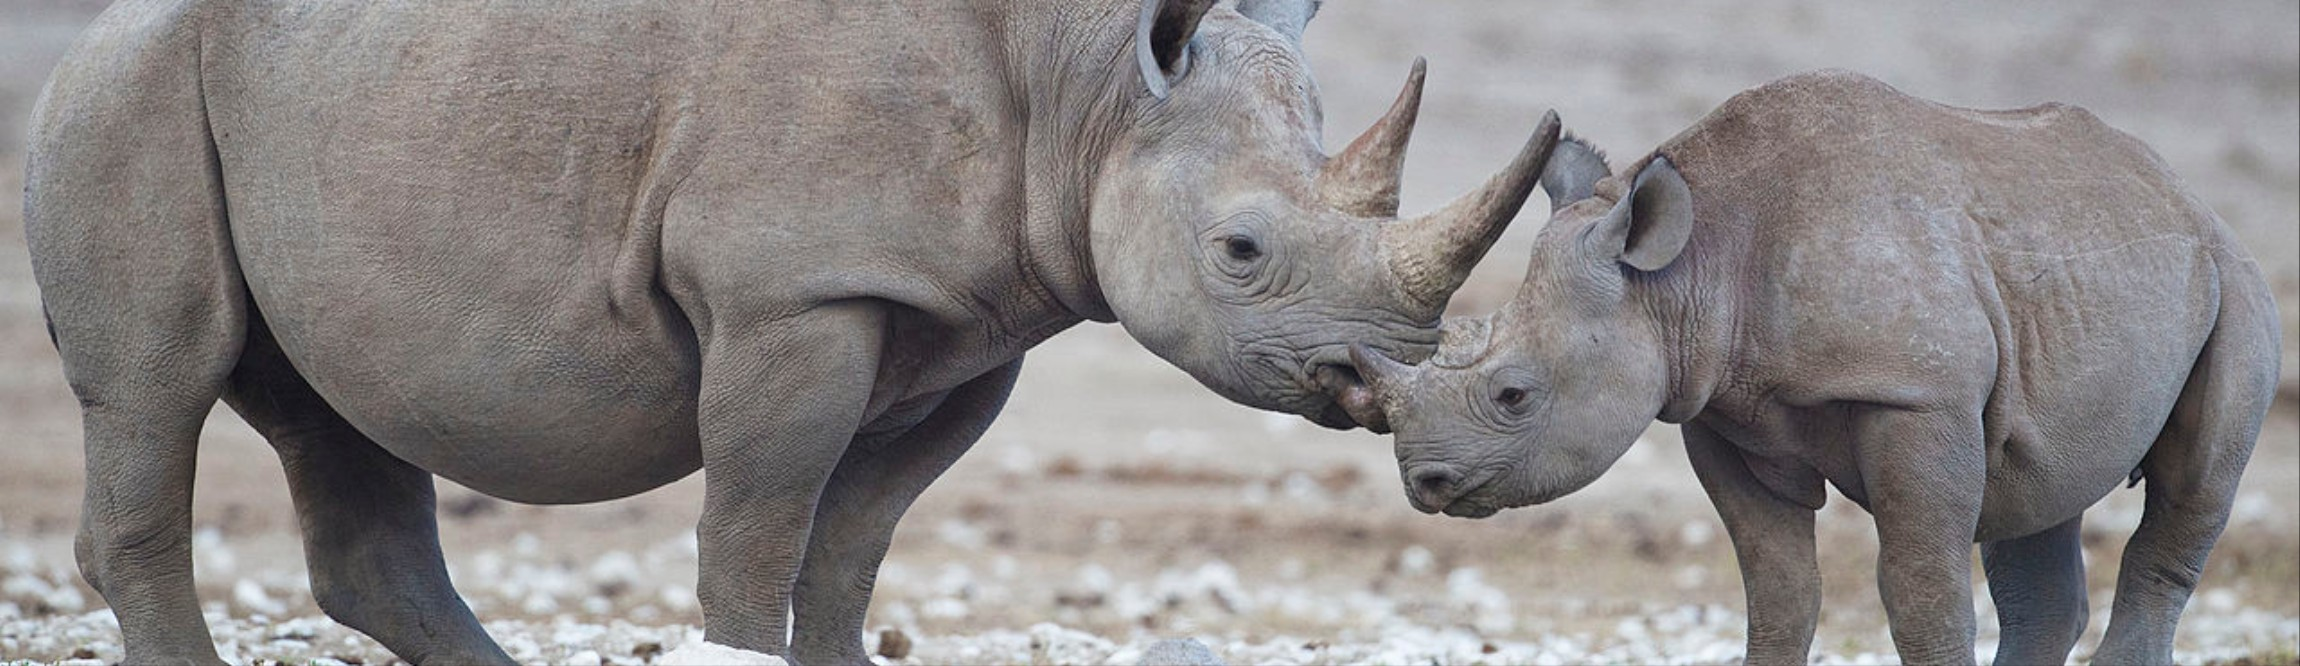 Dehorning Rhinos: A Whole Country Is Banking On It